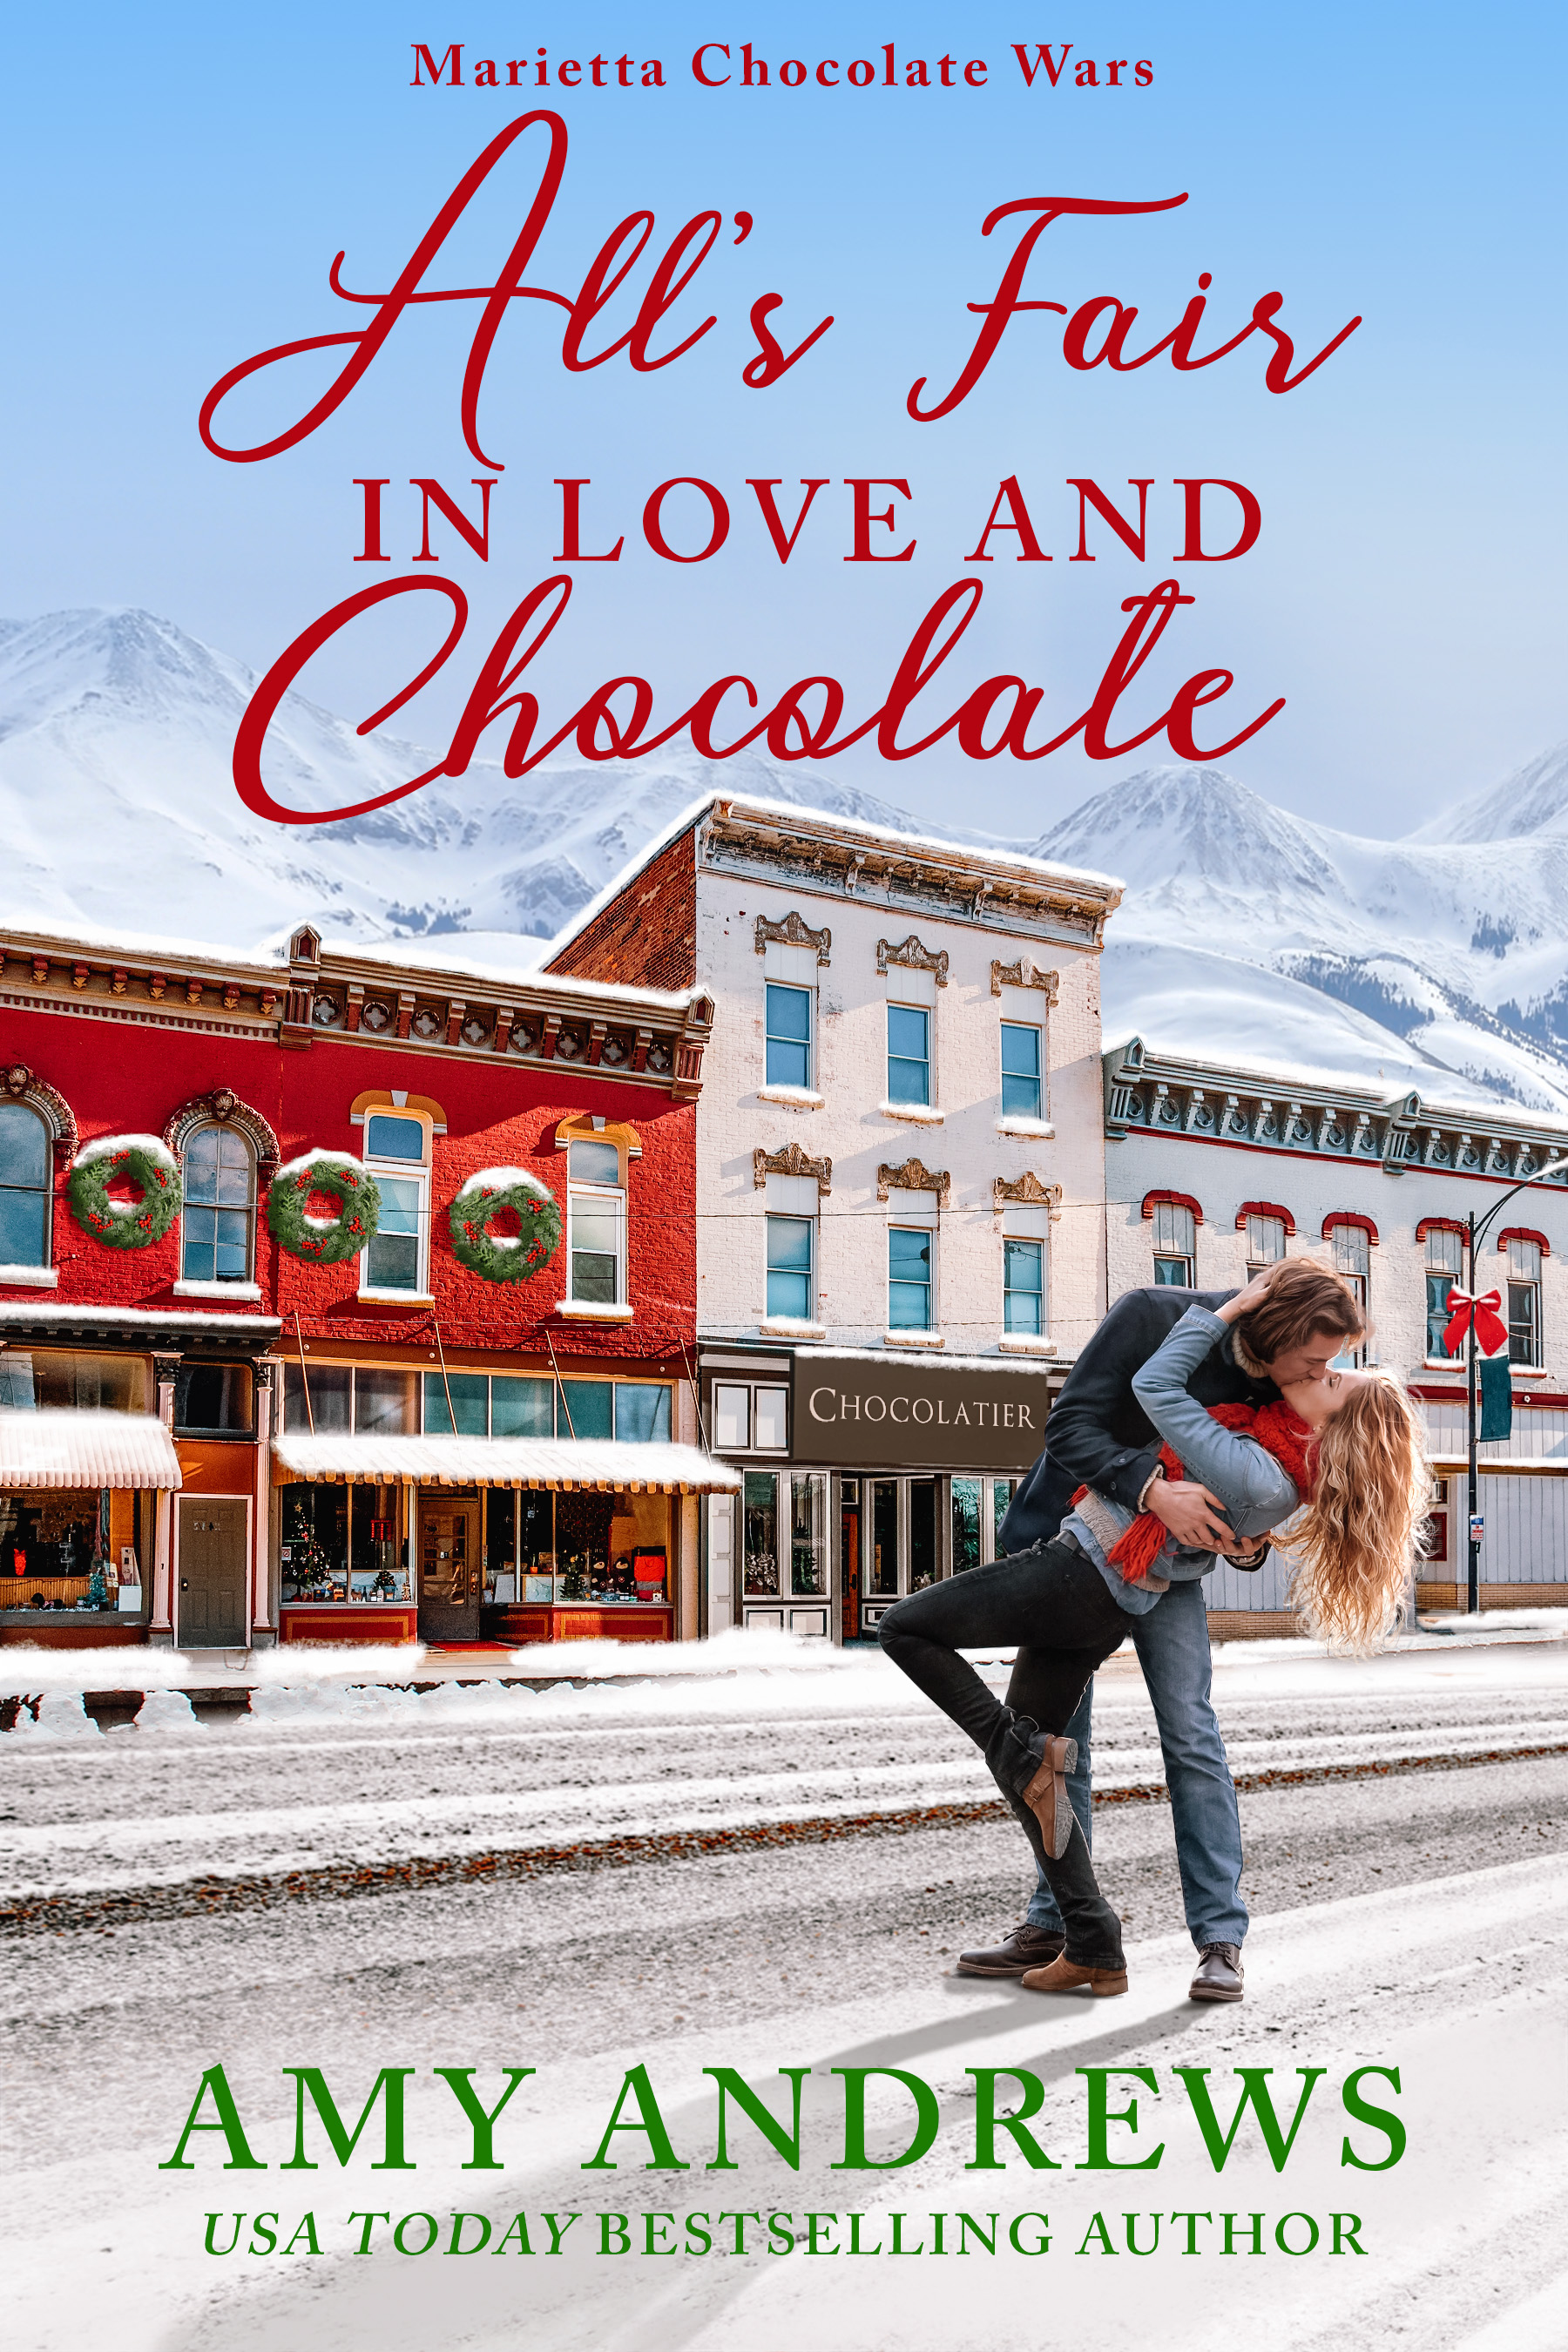 [PDF] [EPUB] All's Fair in Love and Chocolate (Marietta Chocolate Wars, #1) Download by Amy Andrews